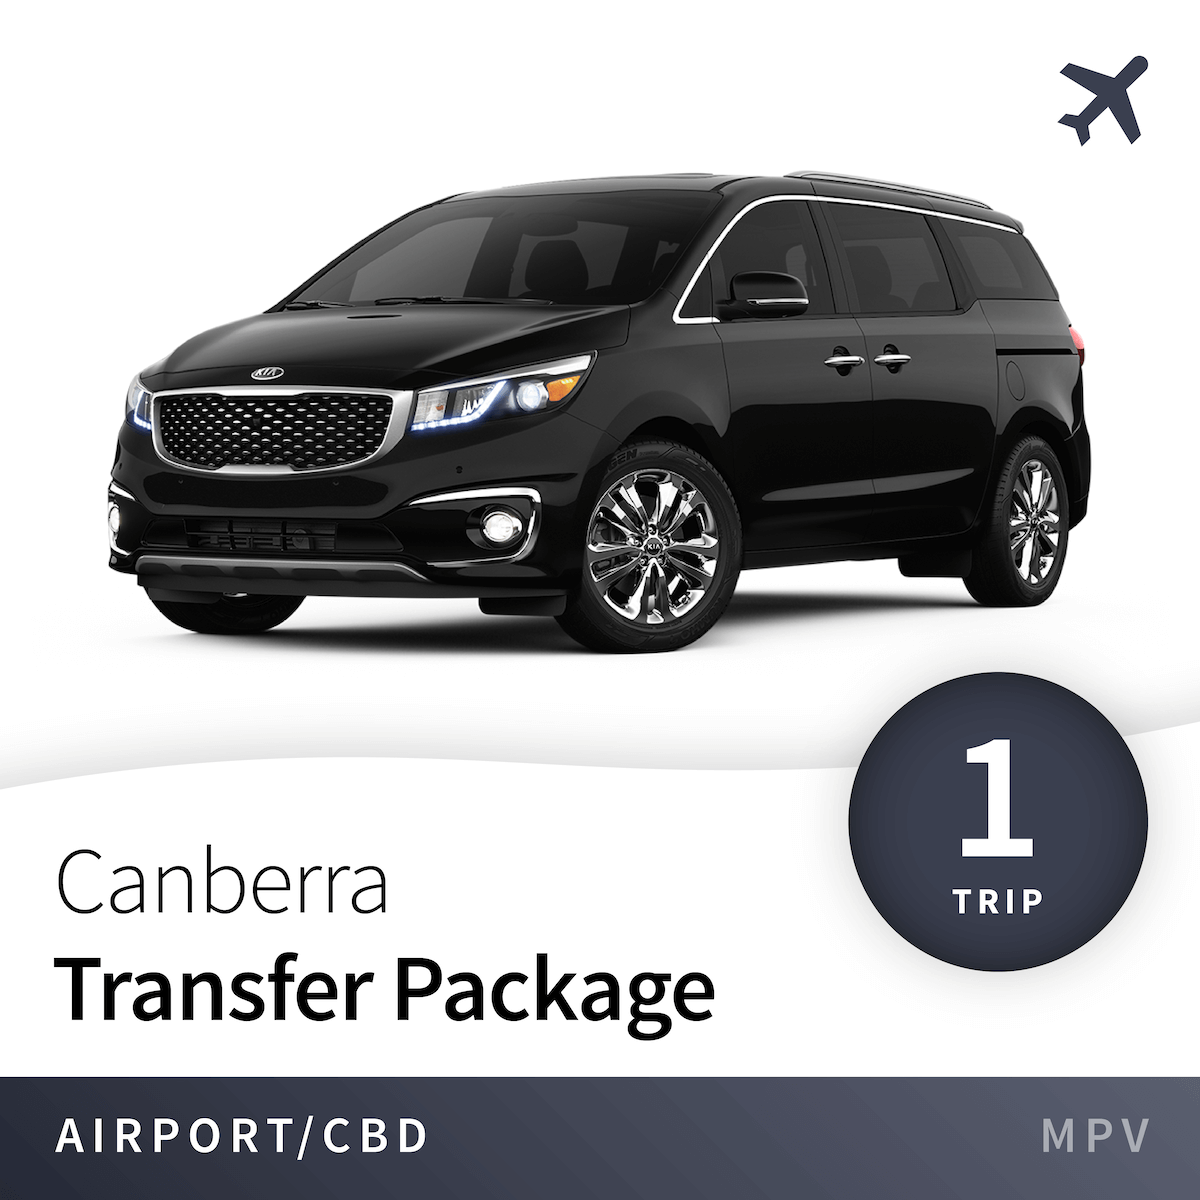 Canberra Airport Transfer Package - MPV (1 Trip) 1